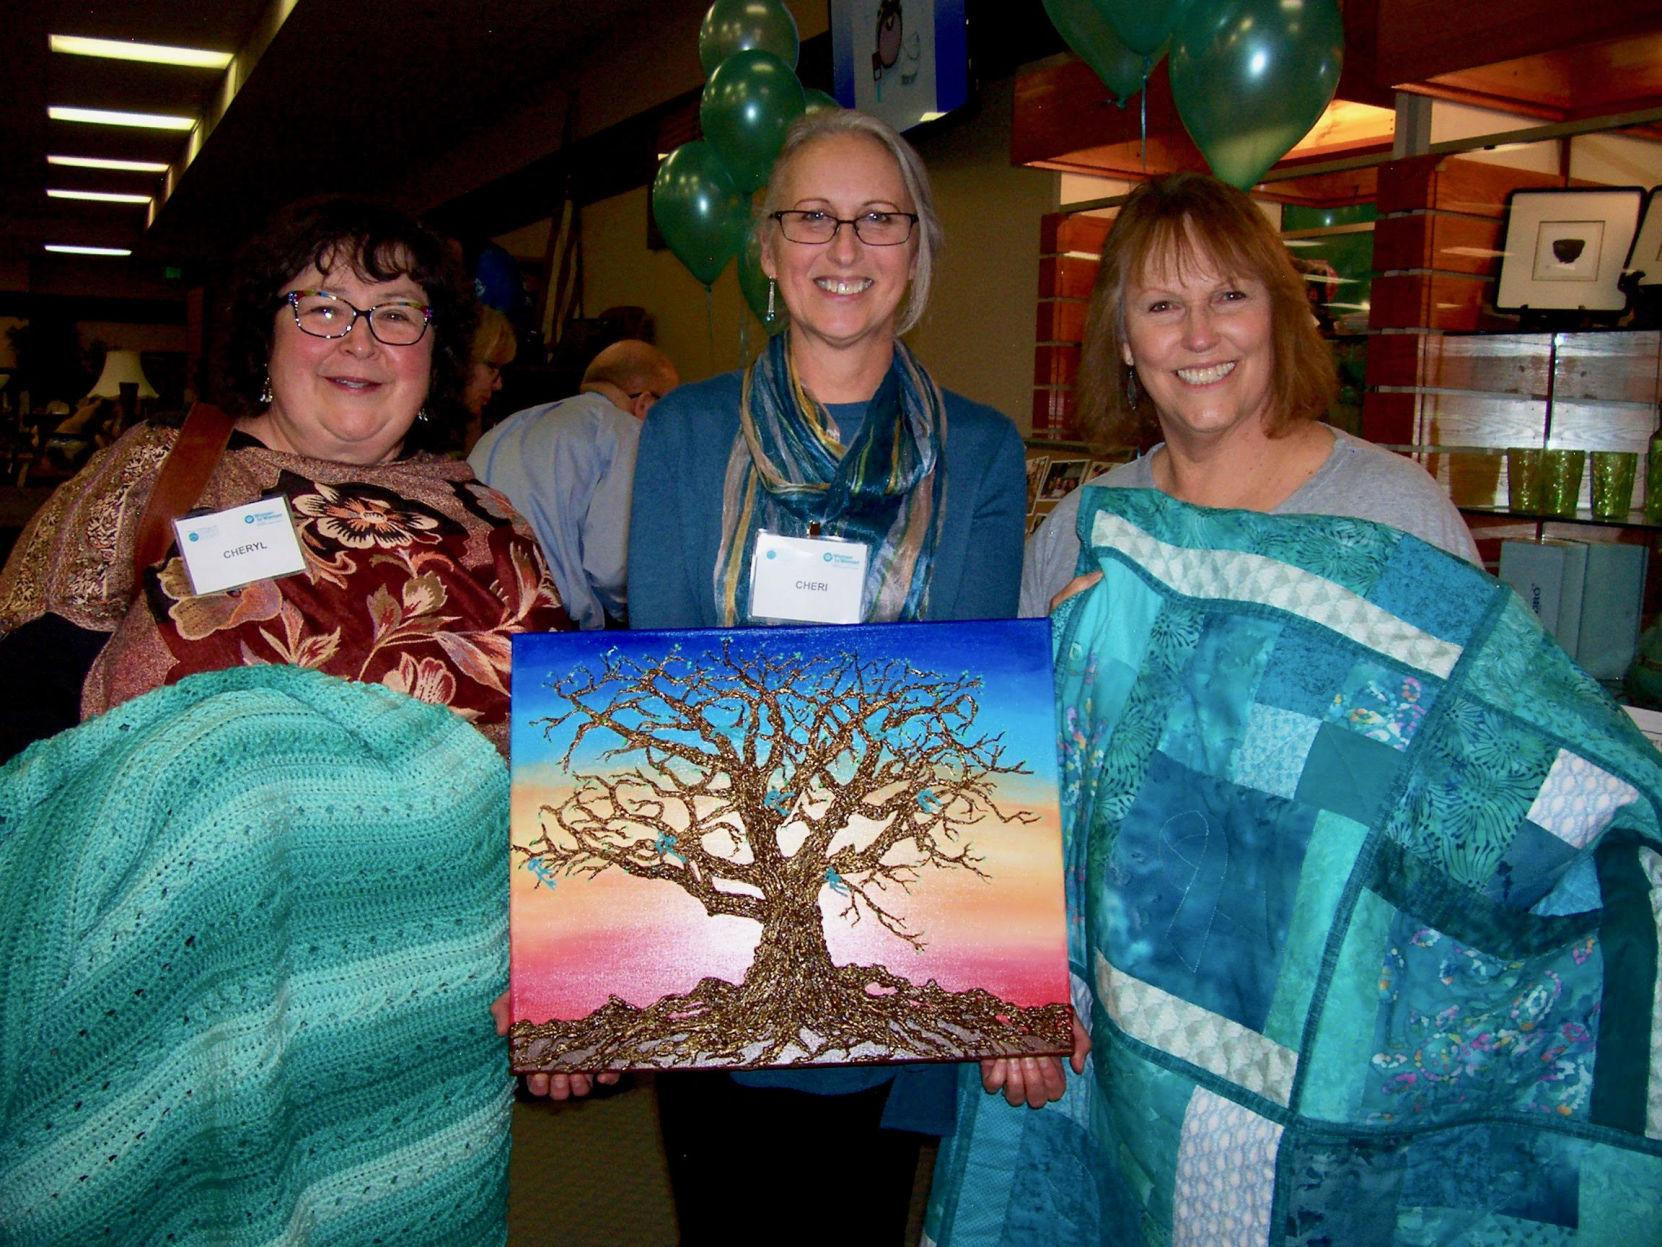 Turning Out In Teal Sue Dinapoli Ovarian Cancer Society Auction Raises Funds To Support Women Battling Cancer Cheyenne Edition Gazette Com